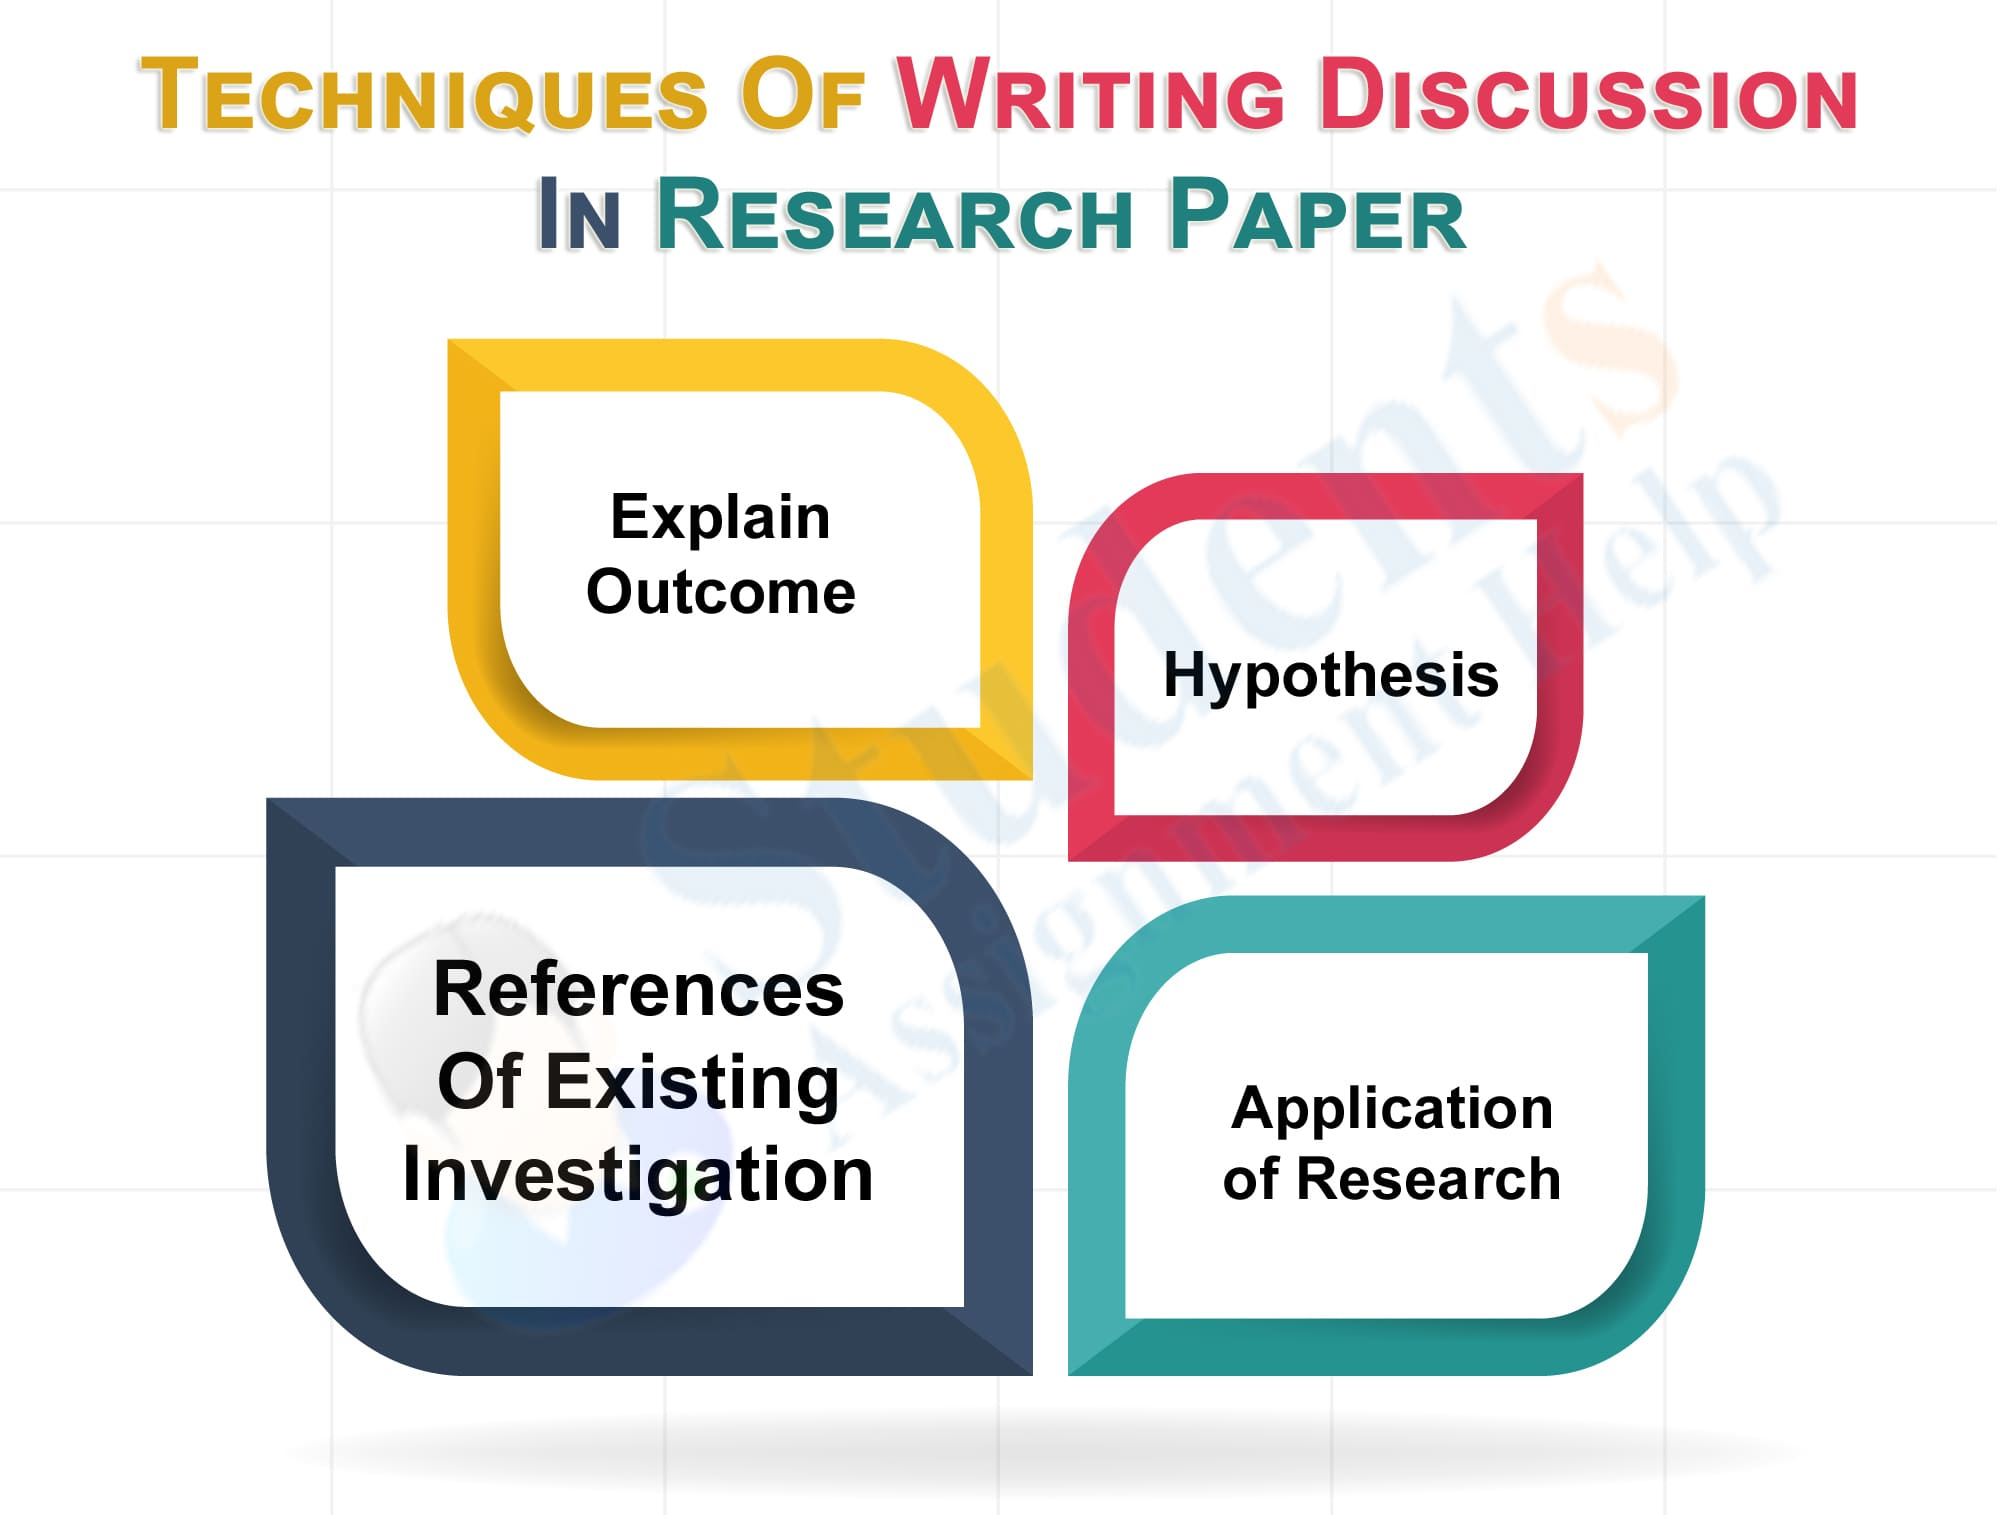 Techniques Of Writing Discussion In Research Paper